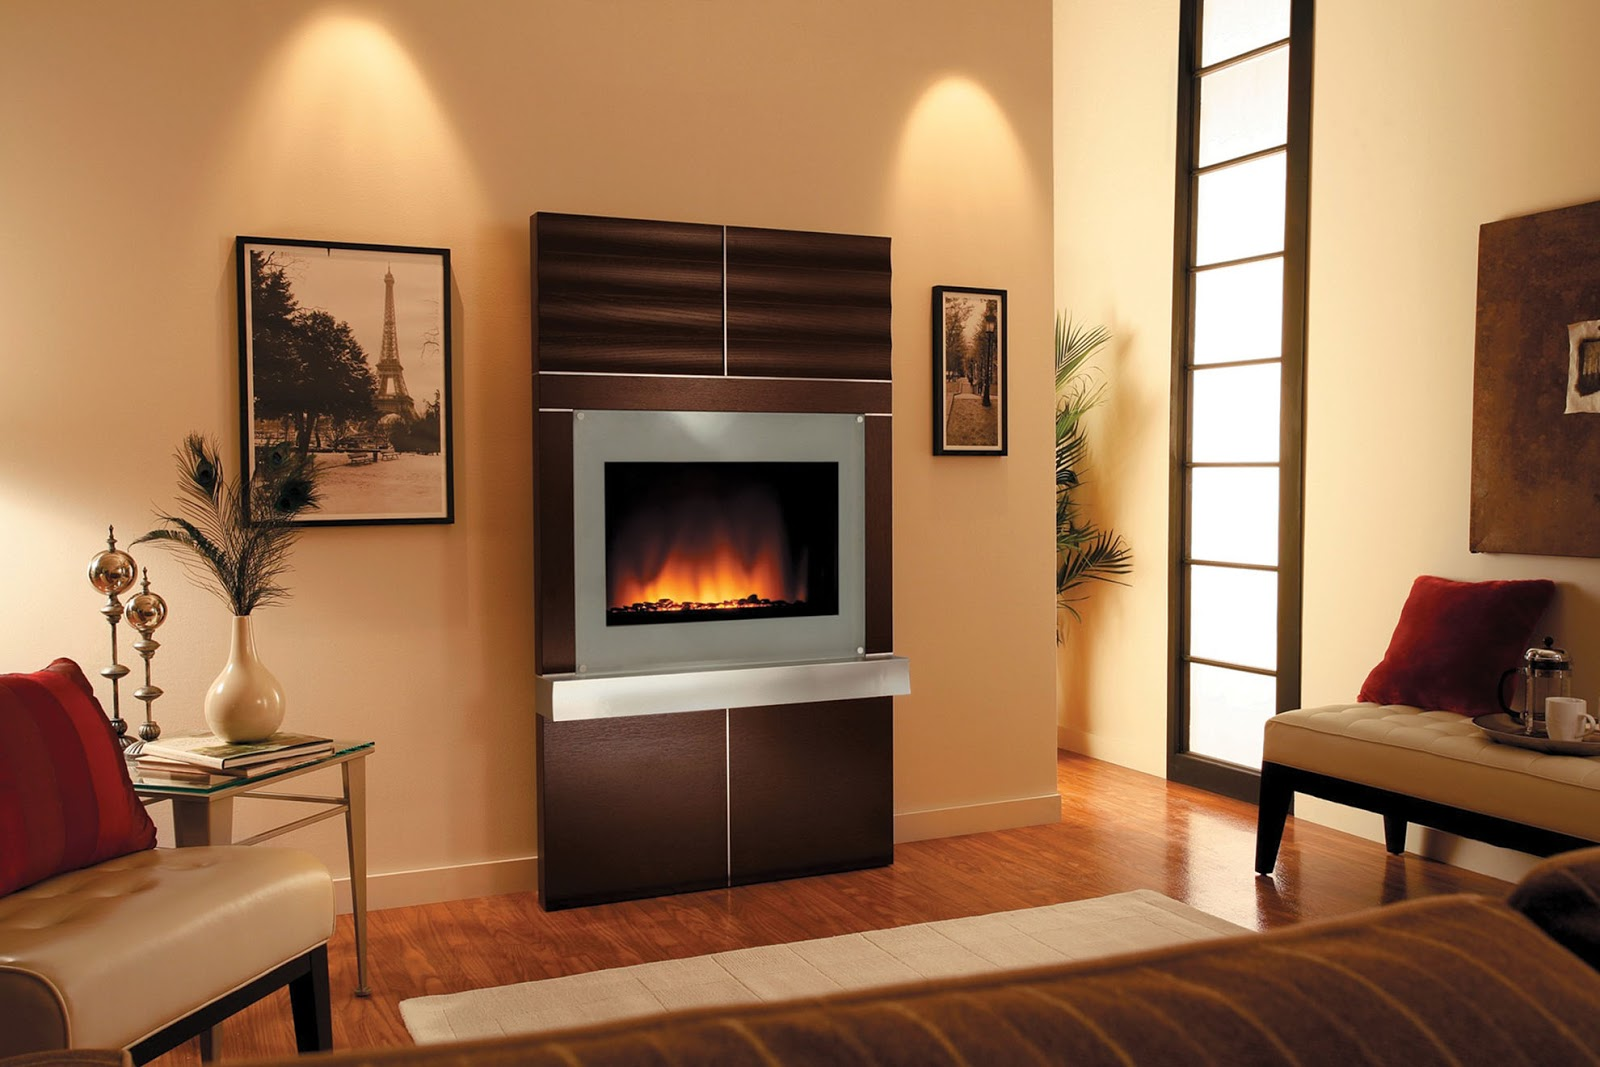 T v wall unit design for Living room design ideas with fireplace